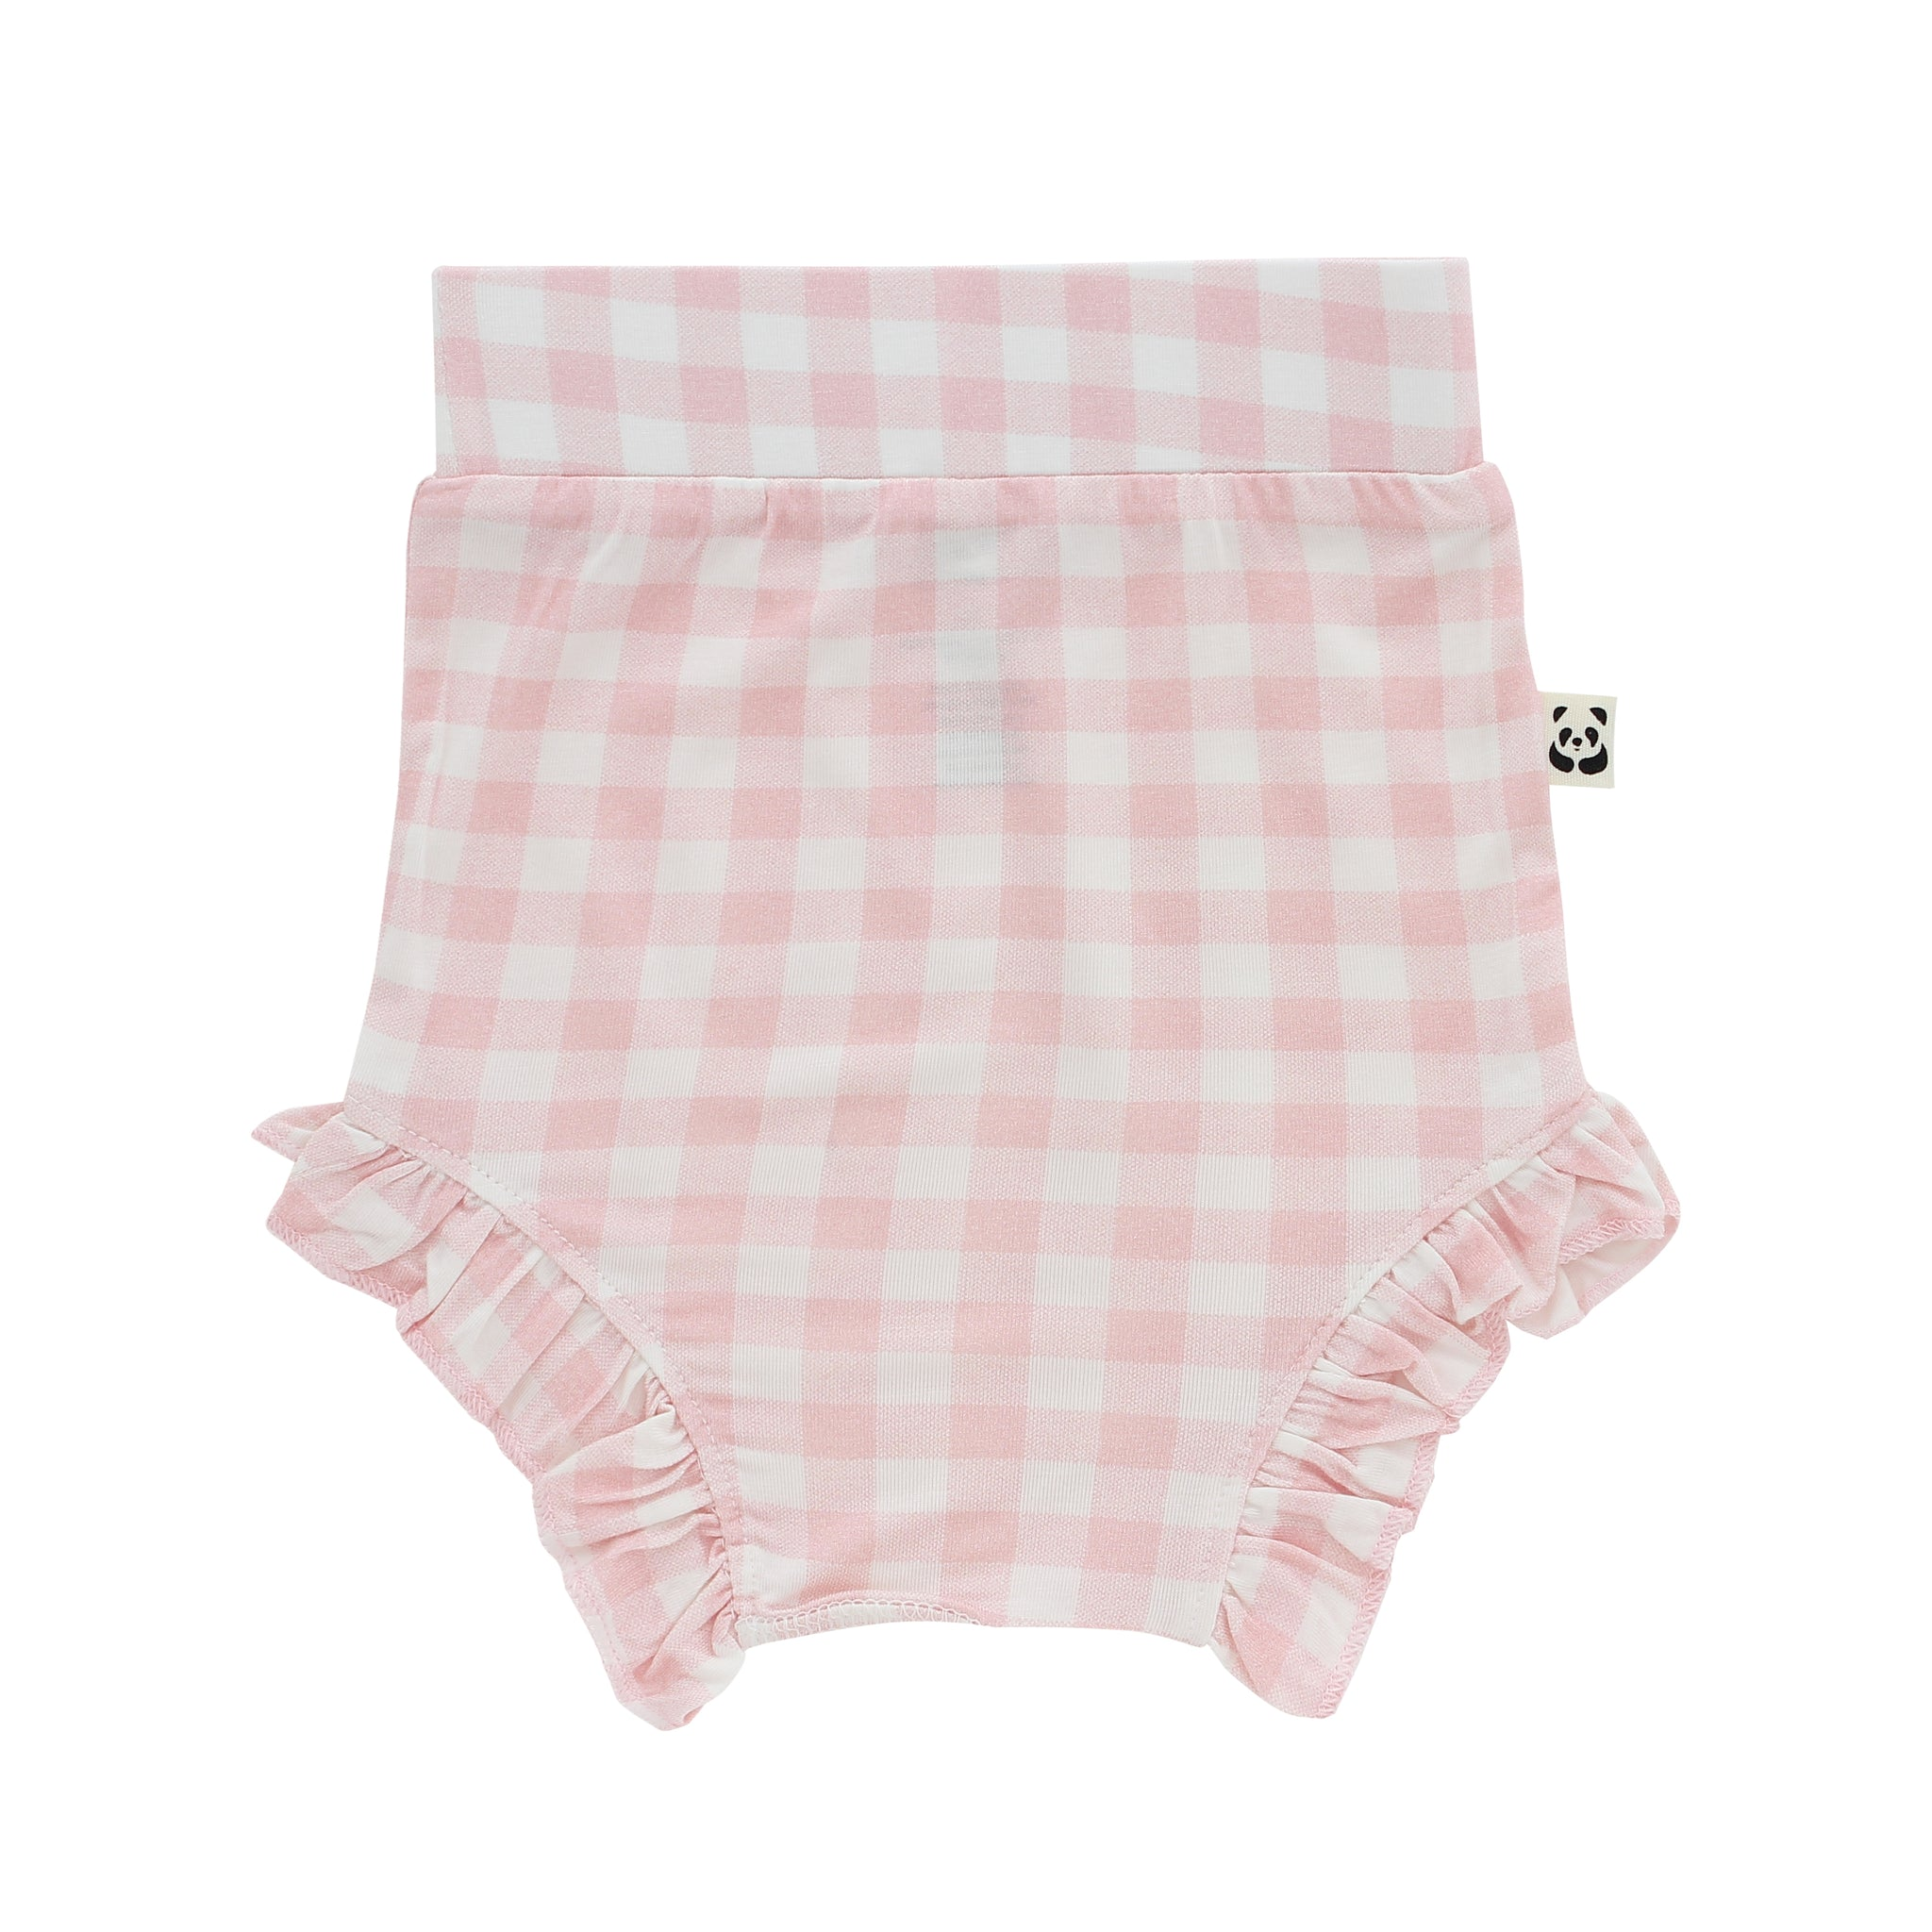 Baby Girl Ruffled Bloomer, Pink Gingham